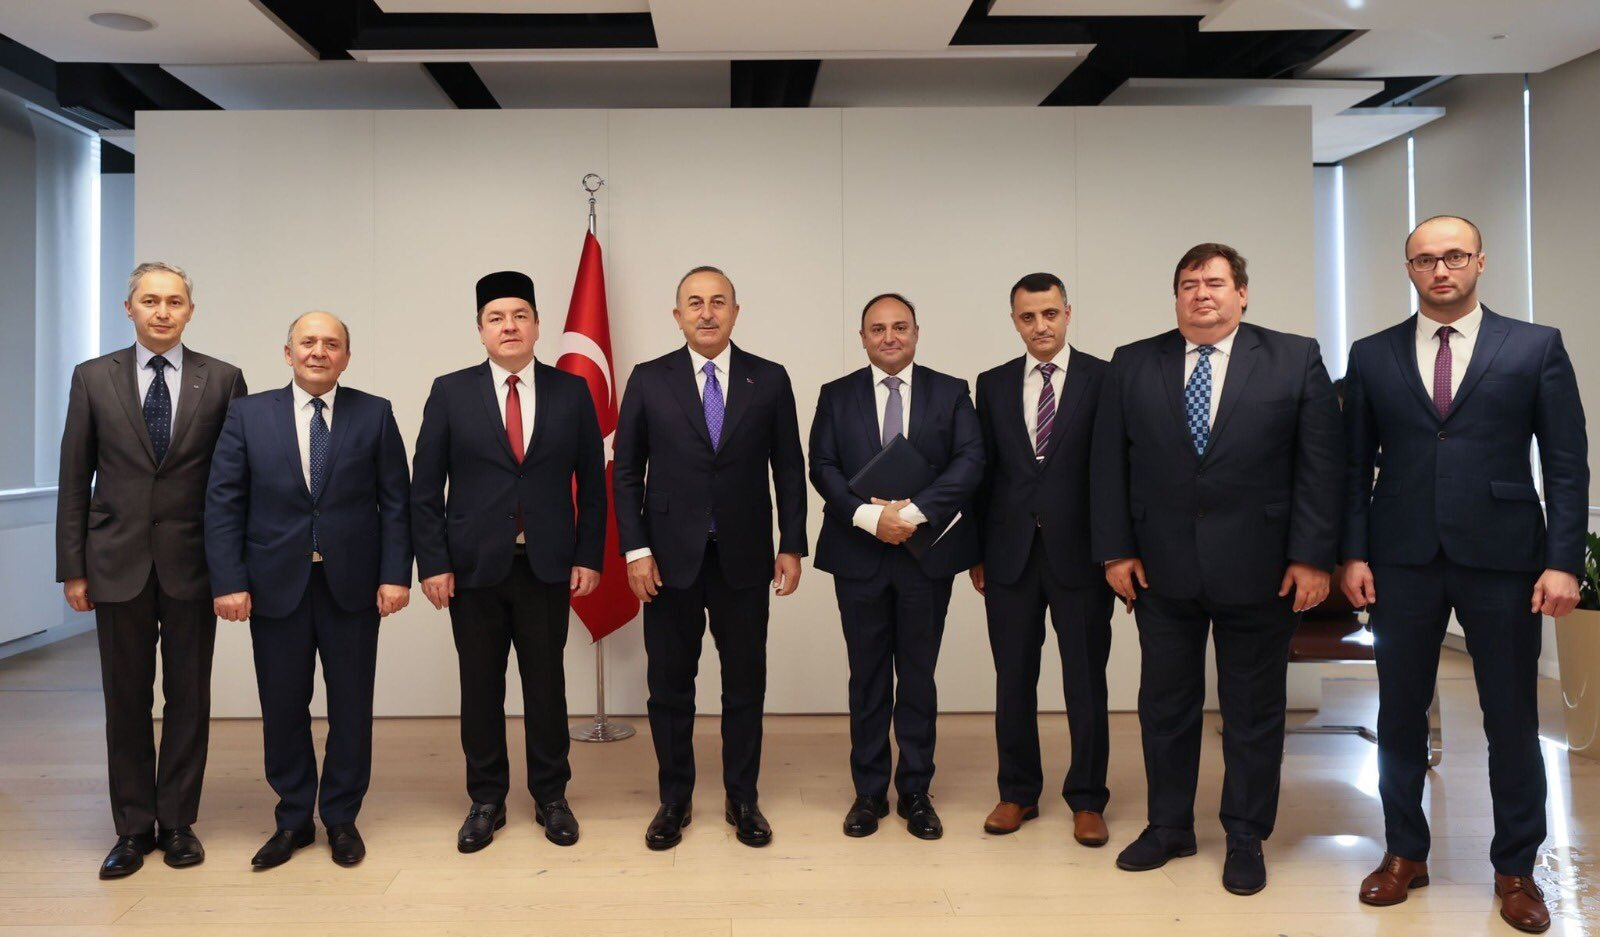 Foreign Minister Mevlüt Çavuşoğlu (C) meets with members of the Muslim Religious Union in Poland, Warsaw, Poland, Oct. 4, 2021. (AA Photo)